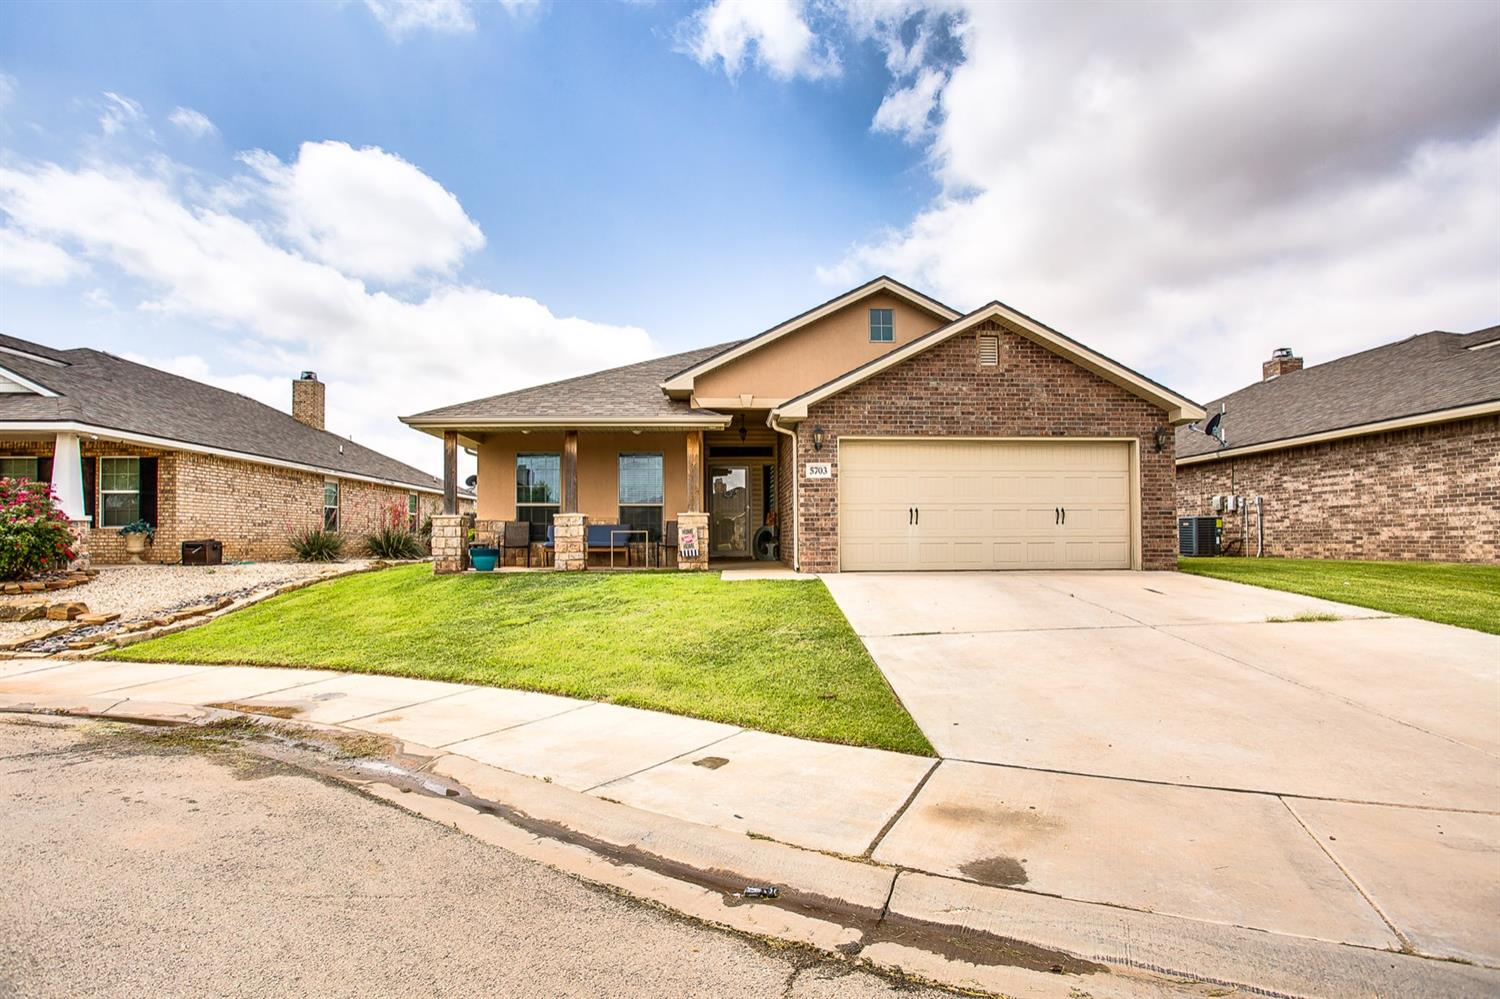 5703 109th Street, Lubbock in Lubbock County, TX 79424 Home for Sale